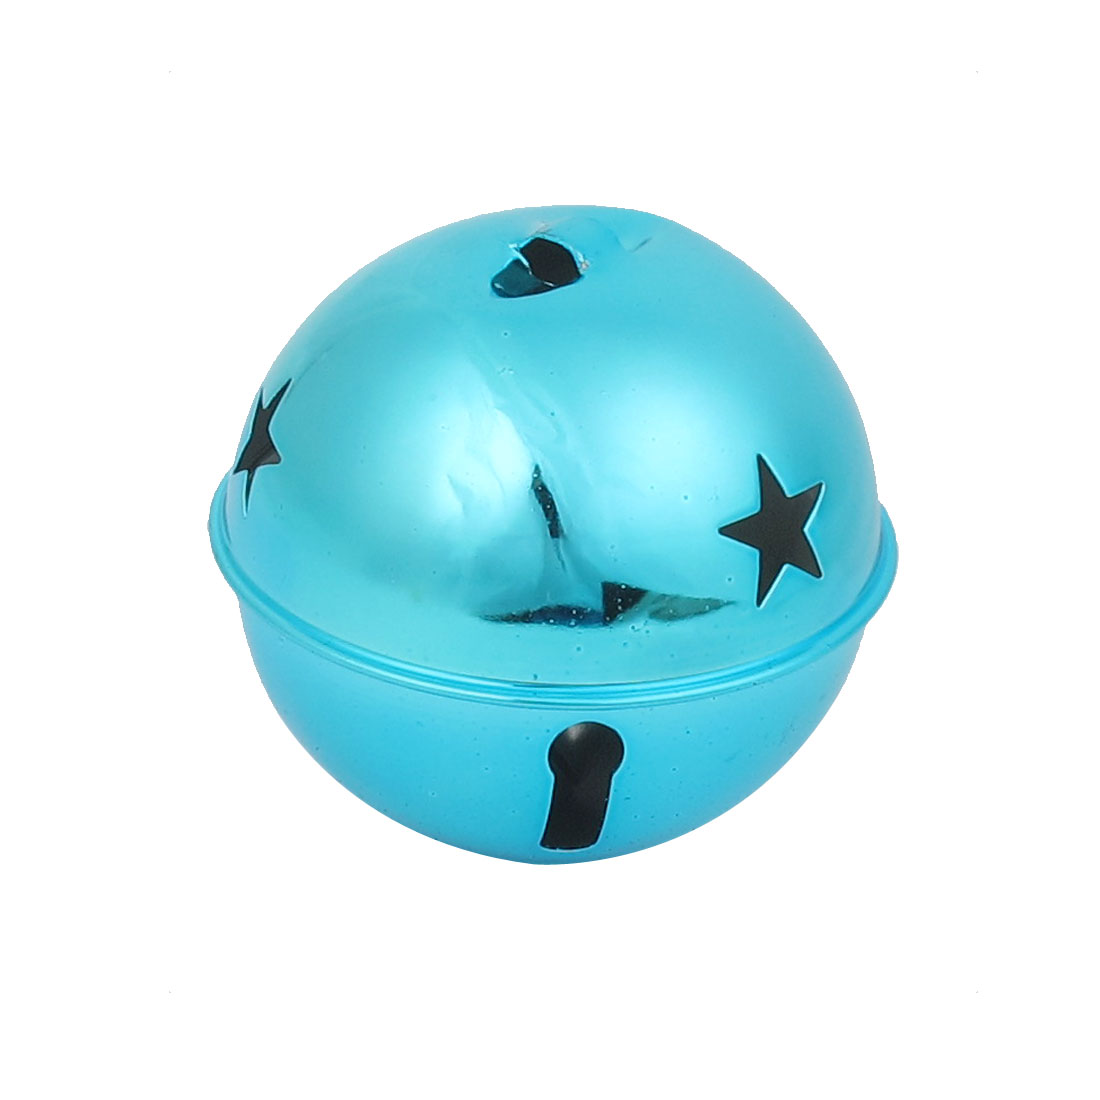 80mm Diameter Teal Blue Metal Star Detail Ball Shape Hollow Out Design Jingle Ring Bell Ornament for Christmas Tree Party